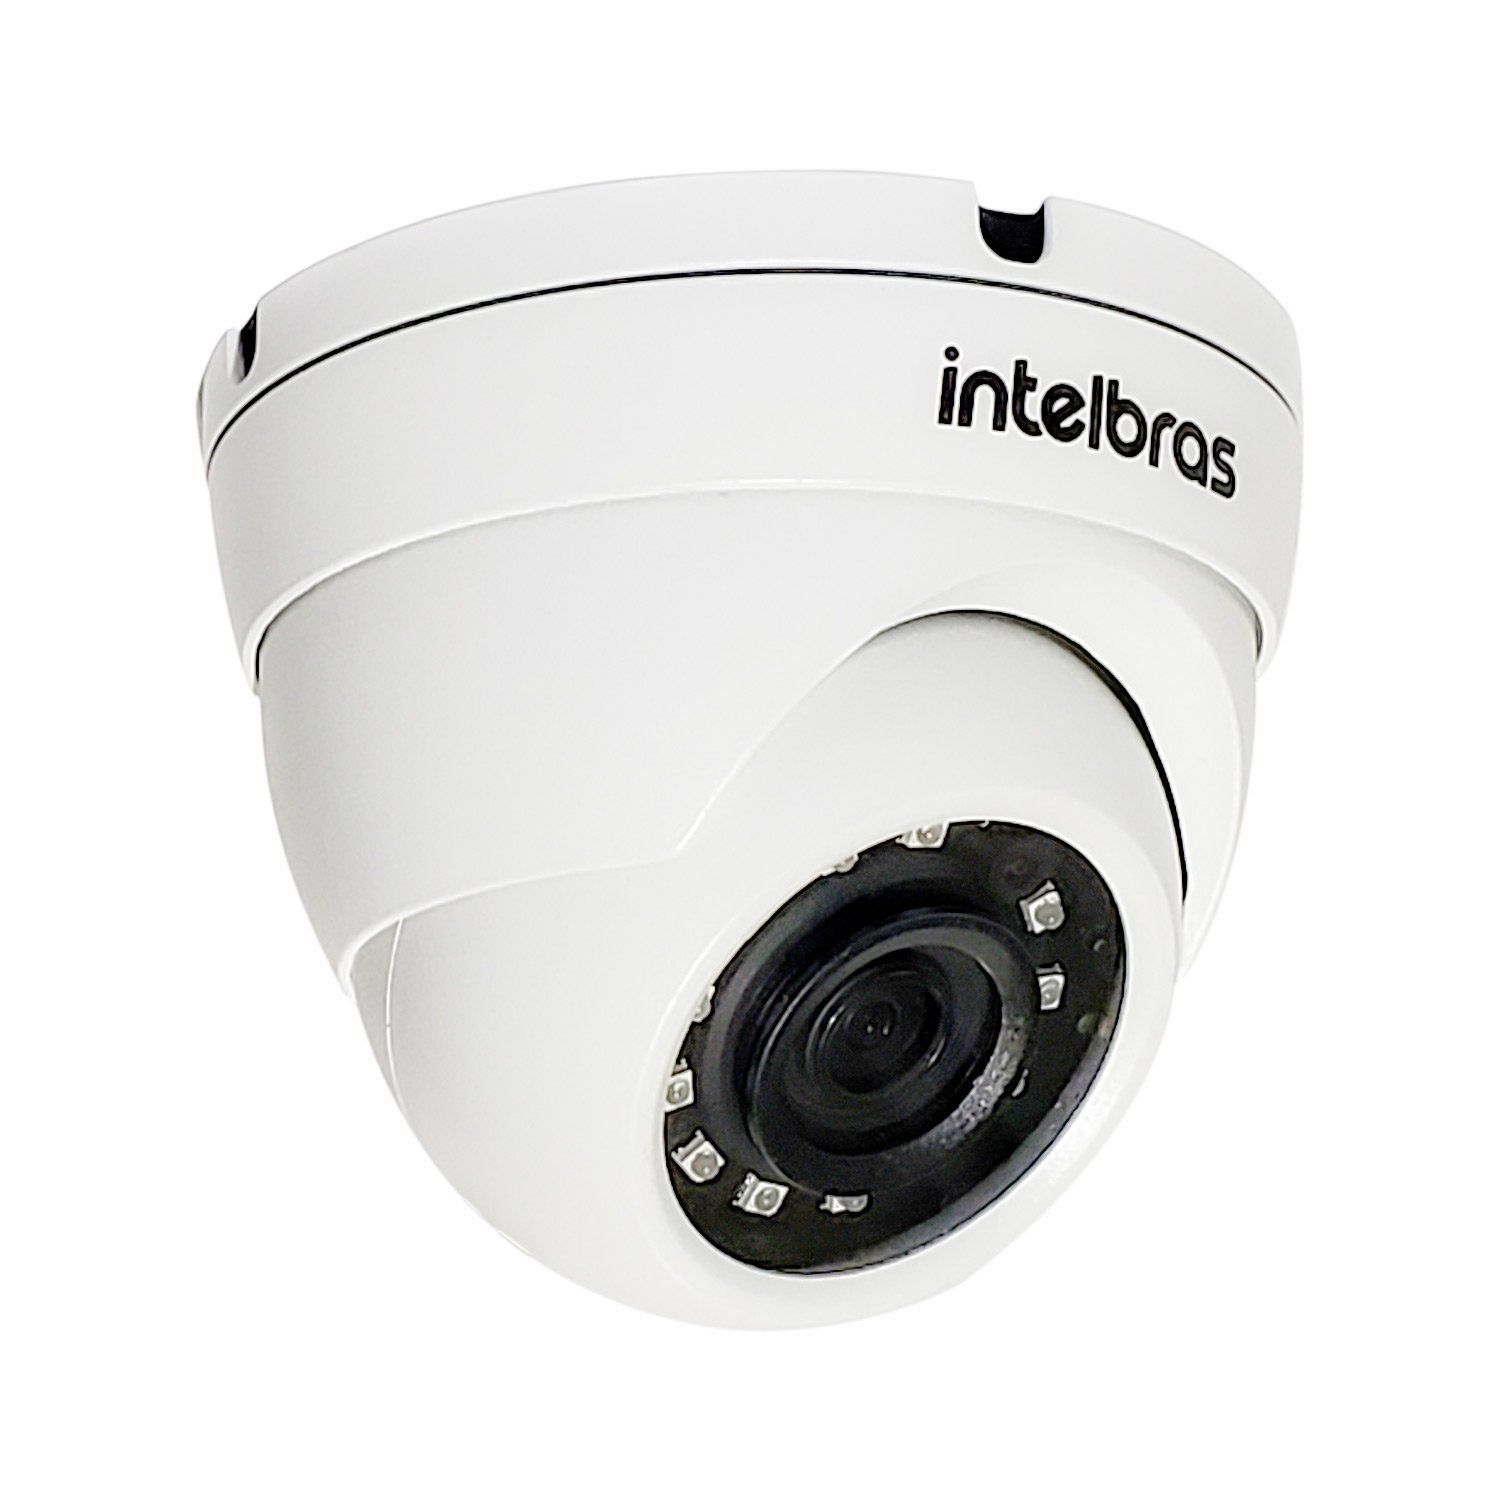 Câmera Intelbras Dome VHD 3220 D G4 Full HD (2.0MP | 1080p | 2.8mm | Metal)